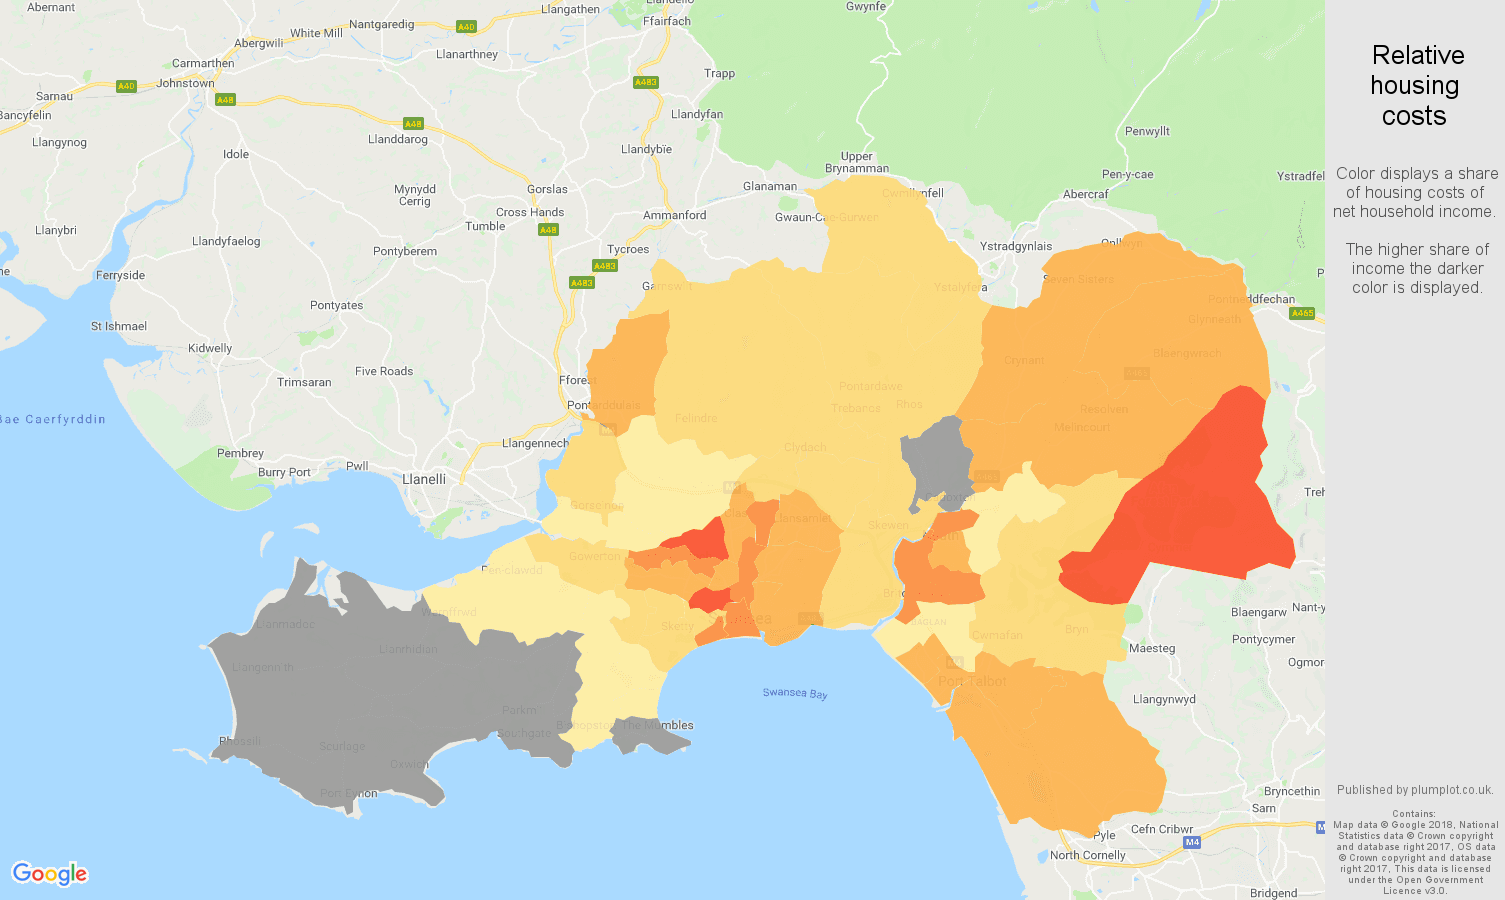 West Glamorgan relative housing costs map